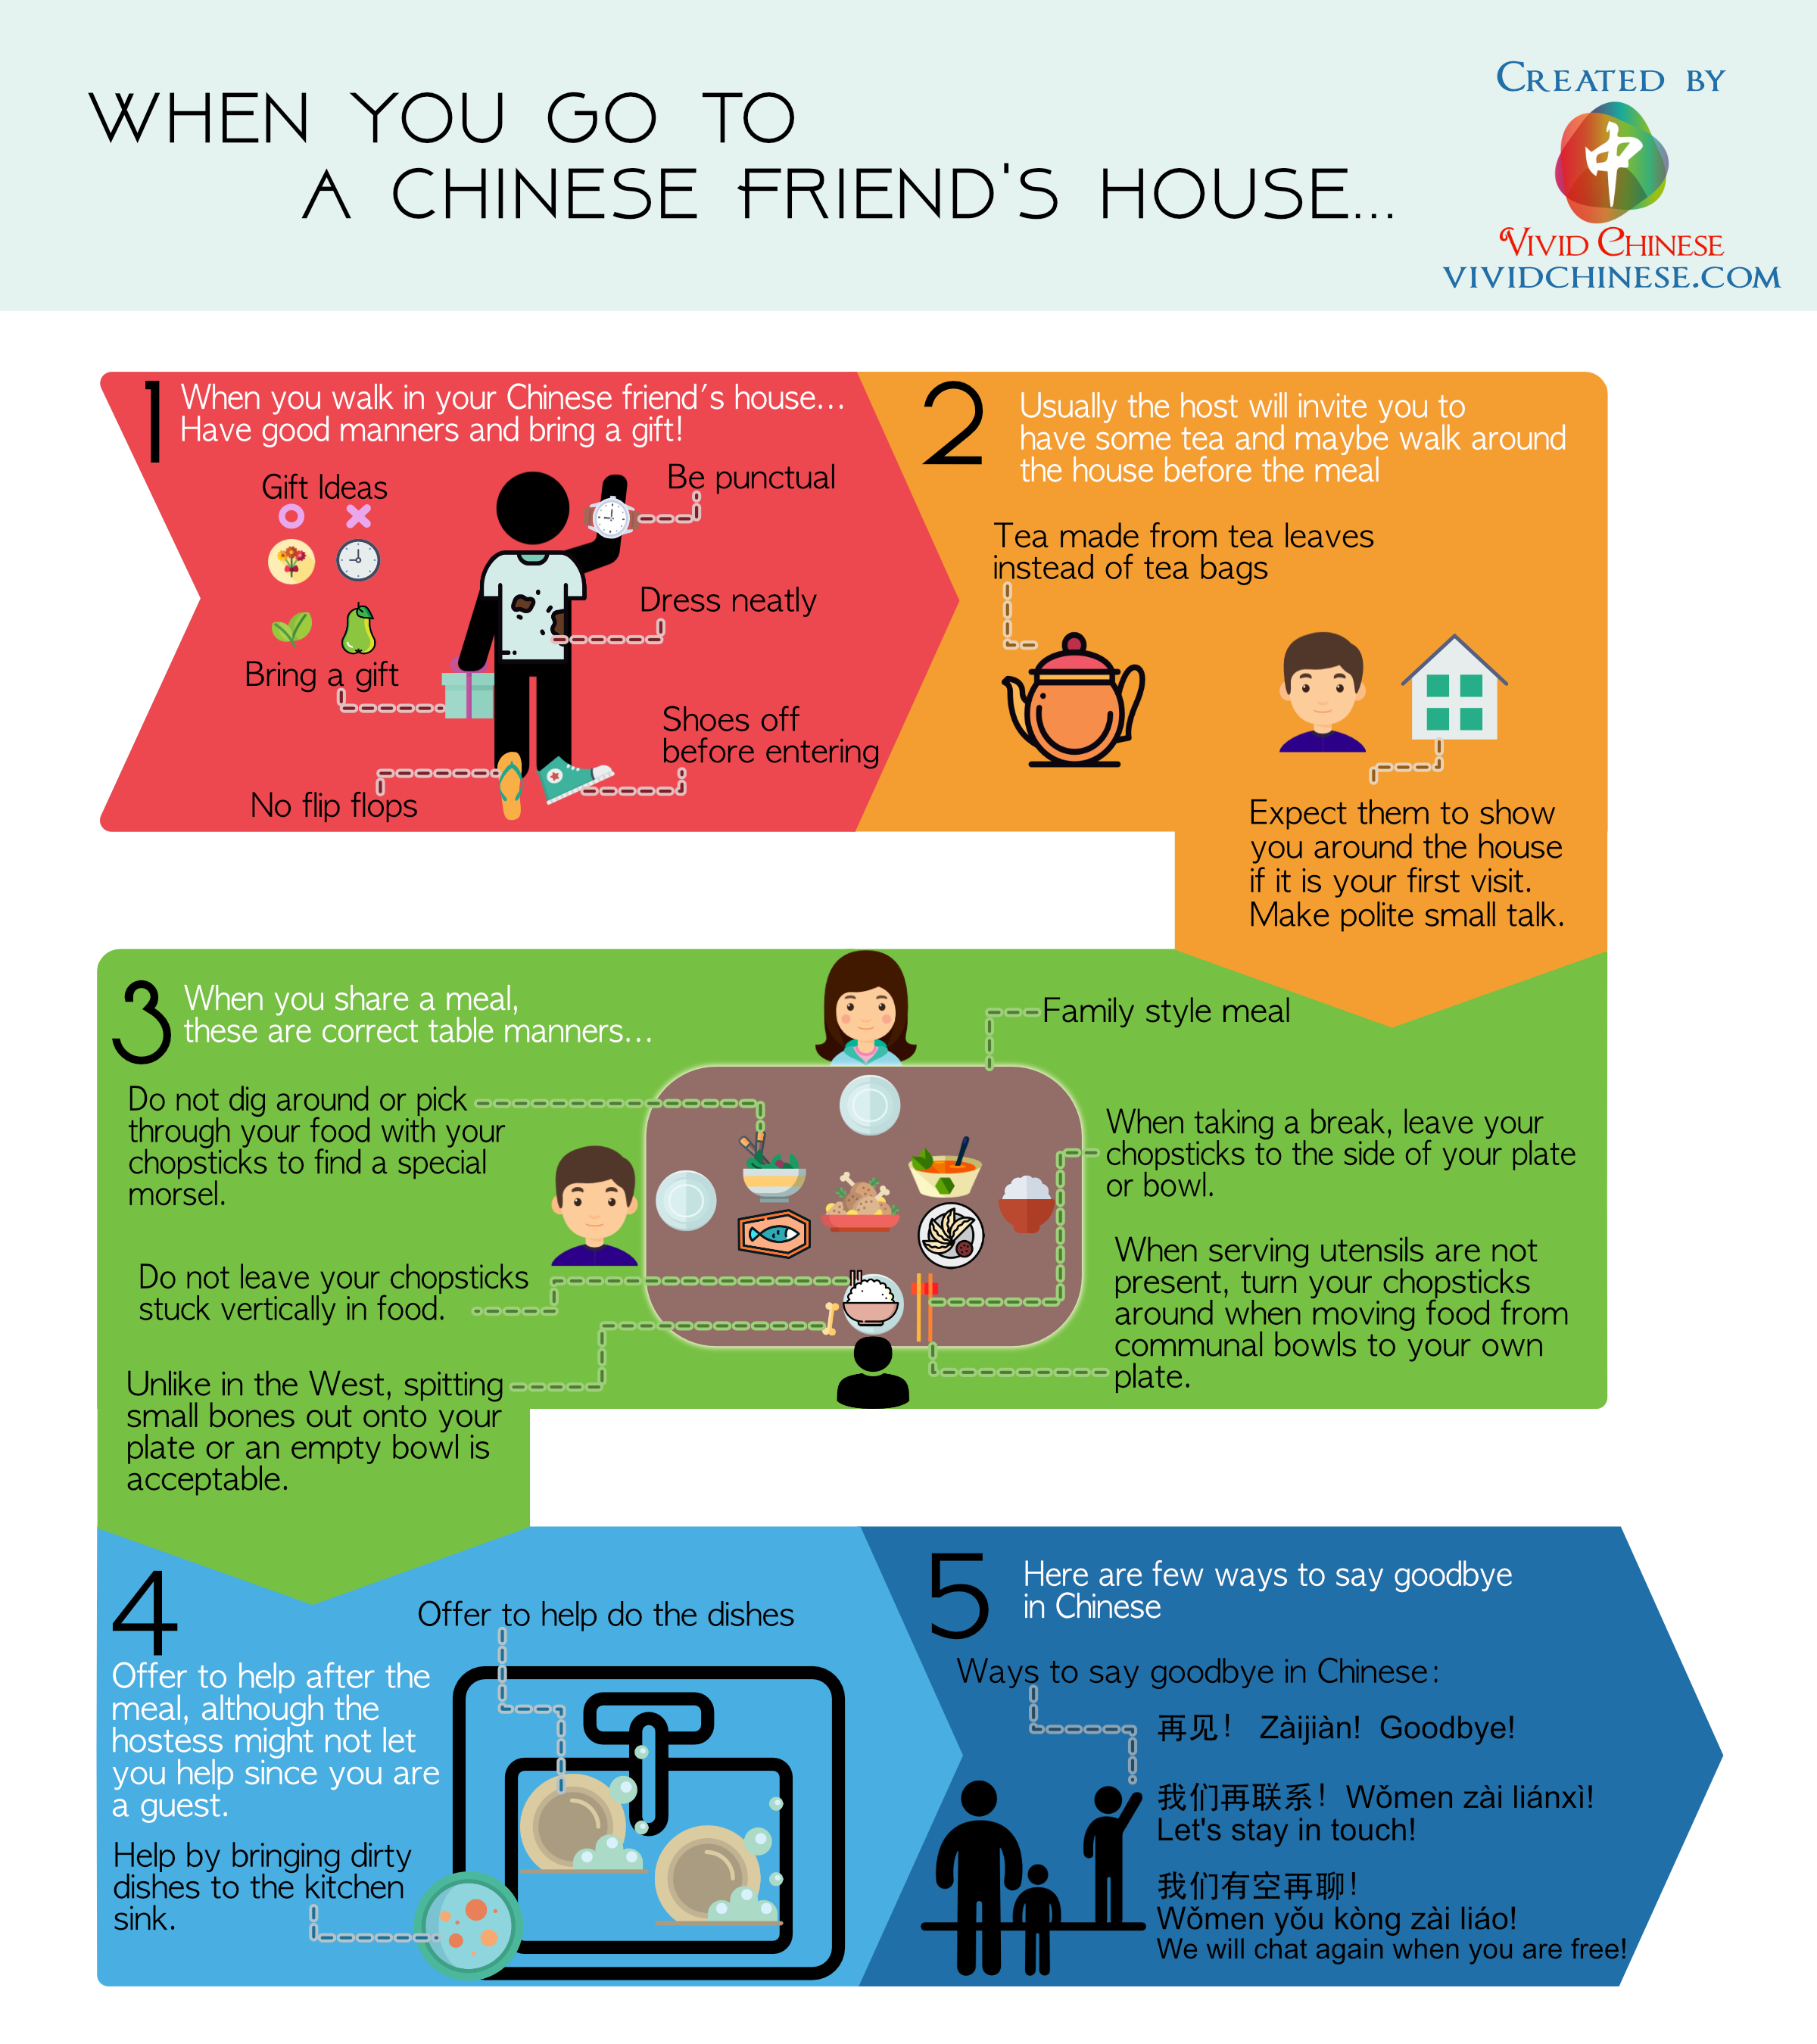 Visit a Chinese friend's house